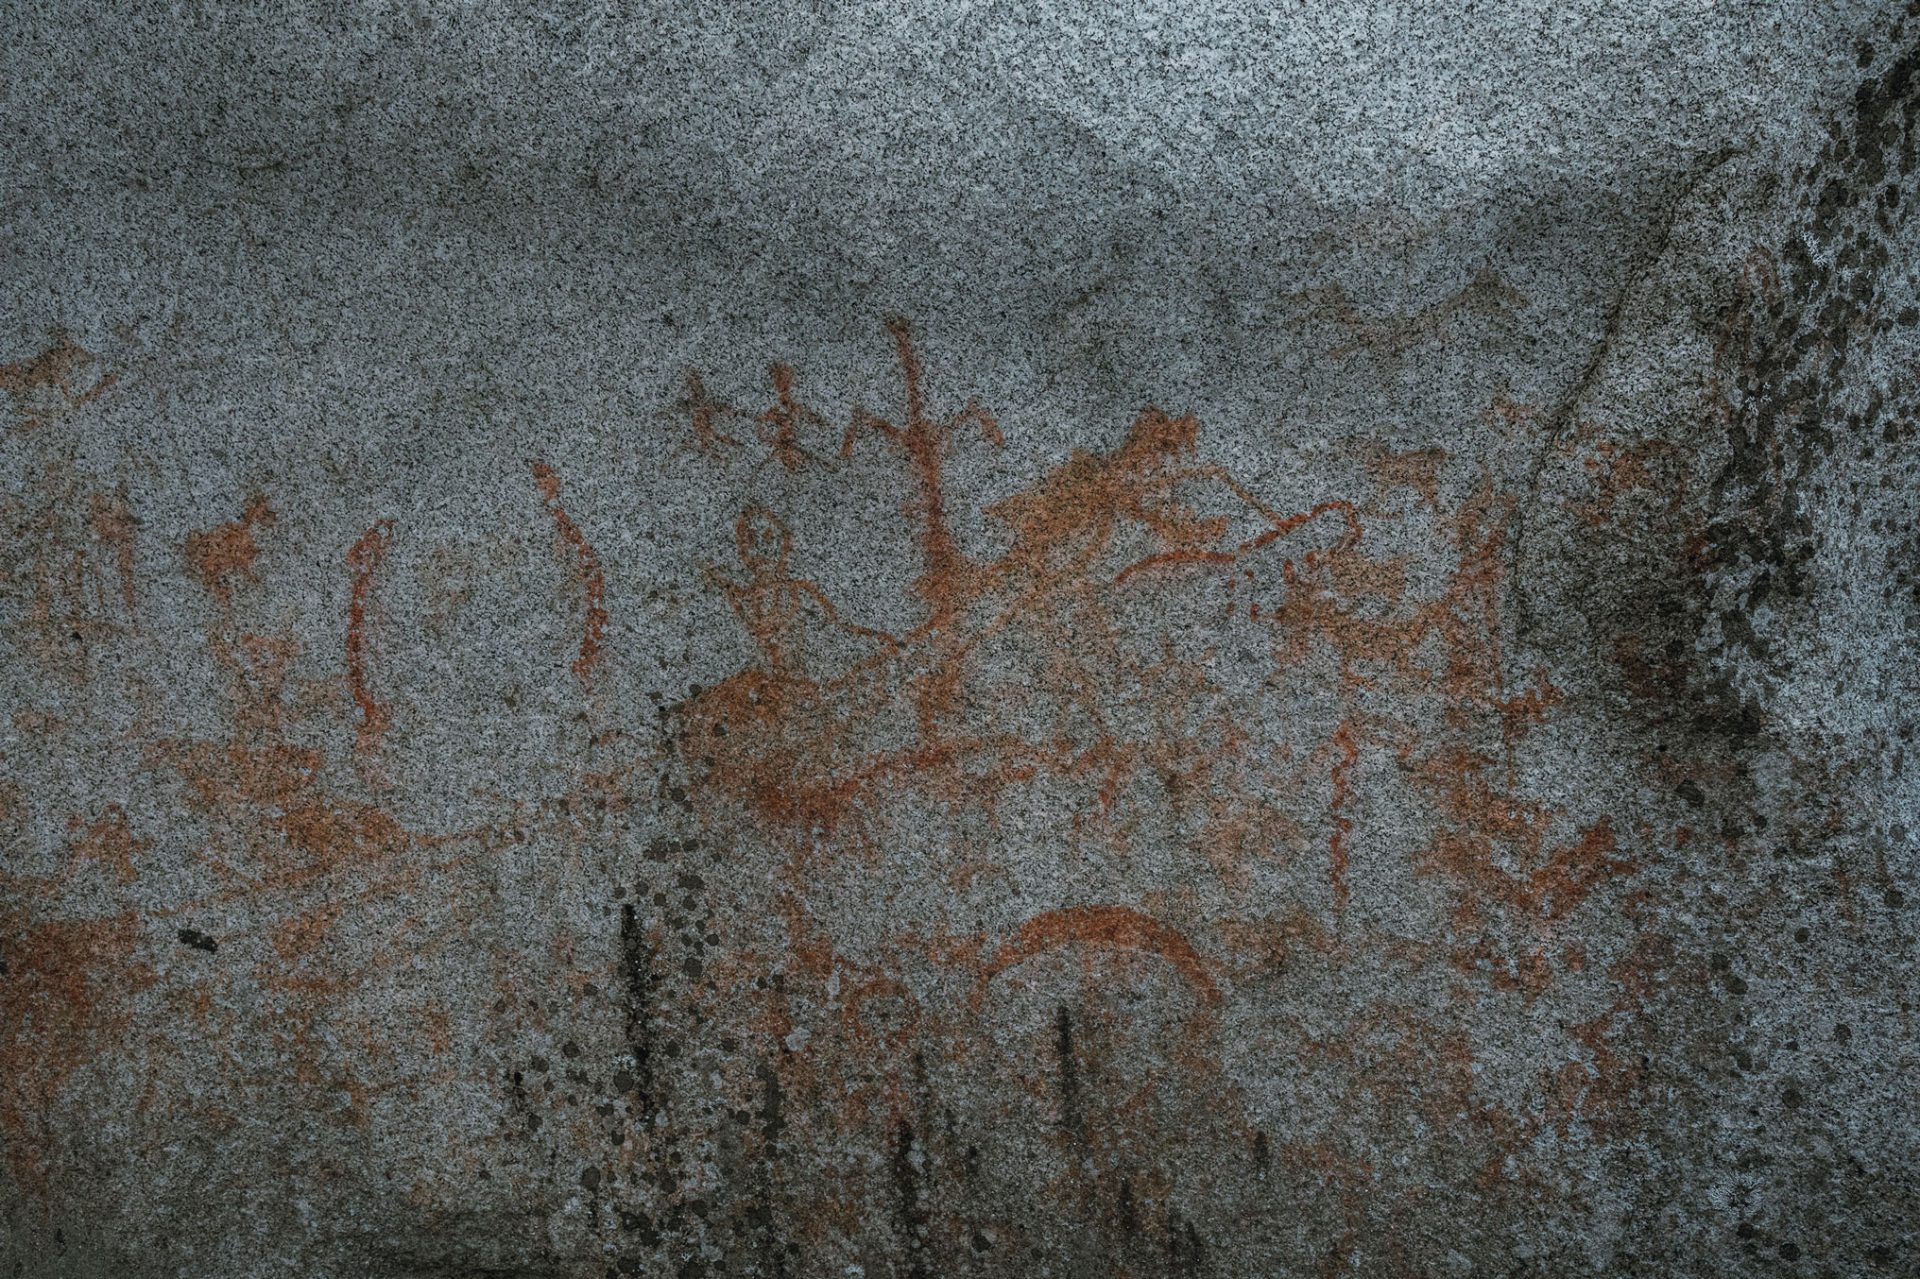 Stòlō nation (People of the River) petroglyphs